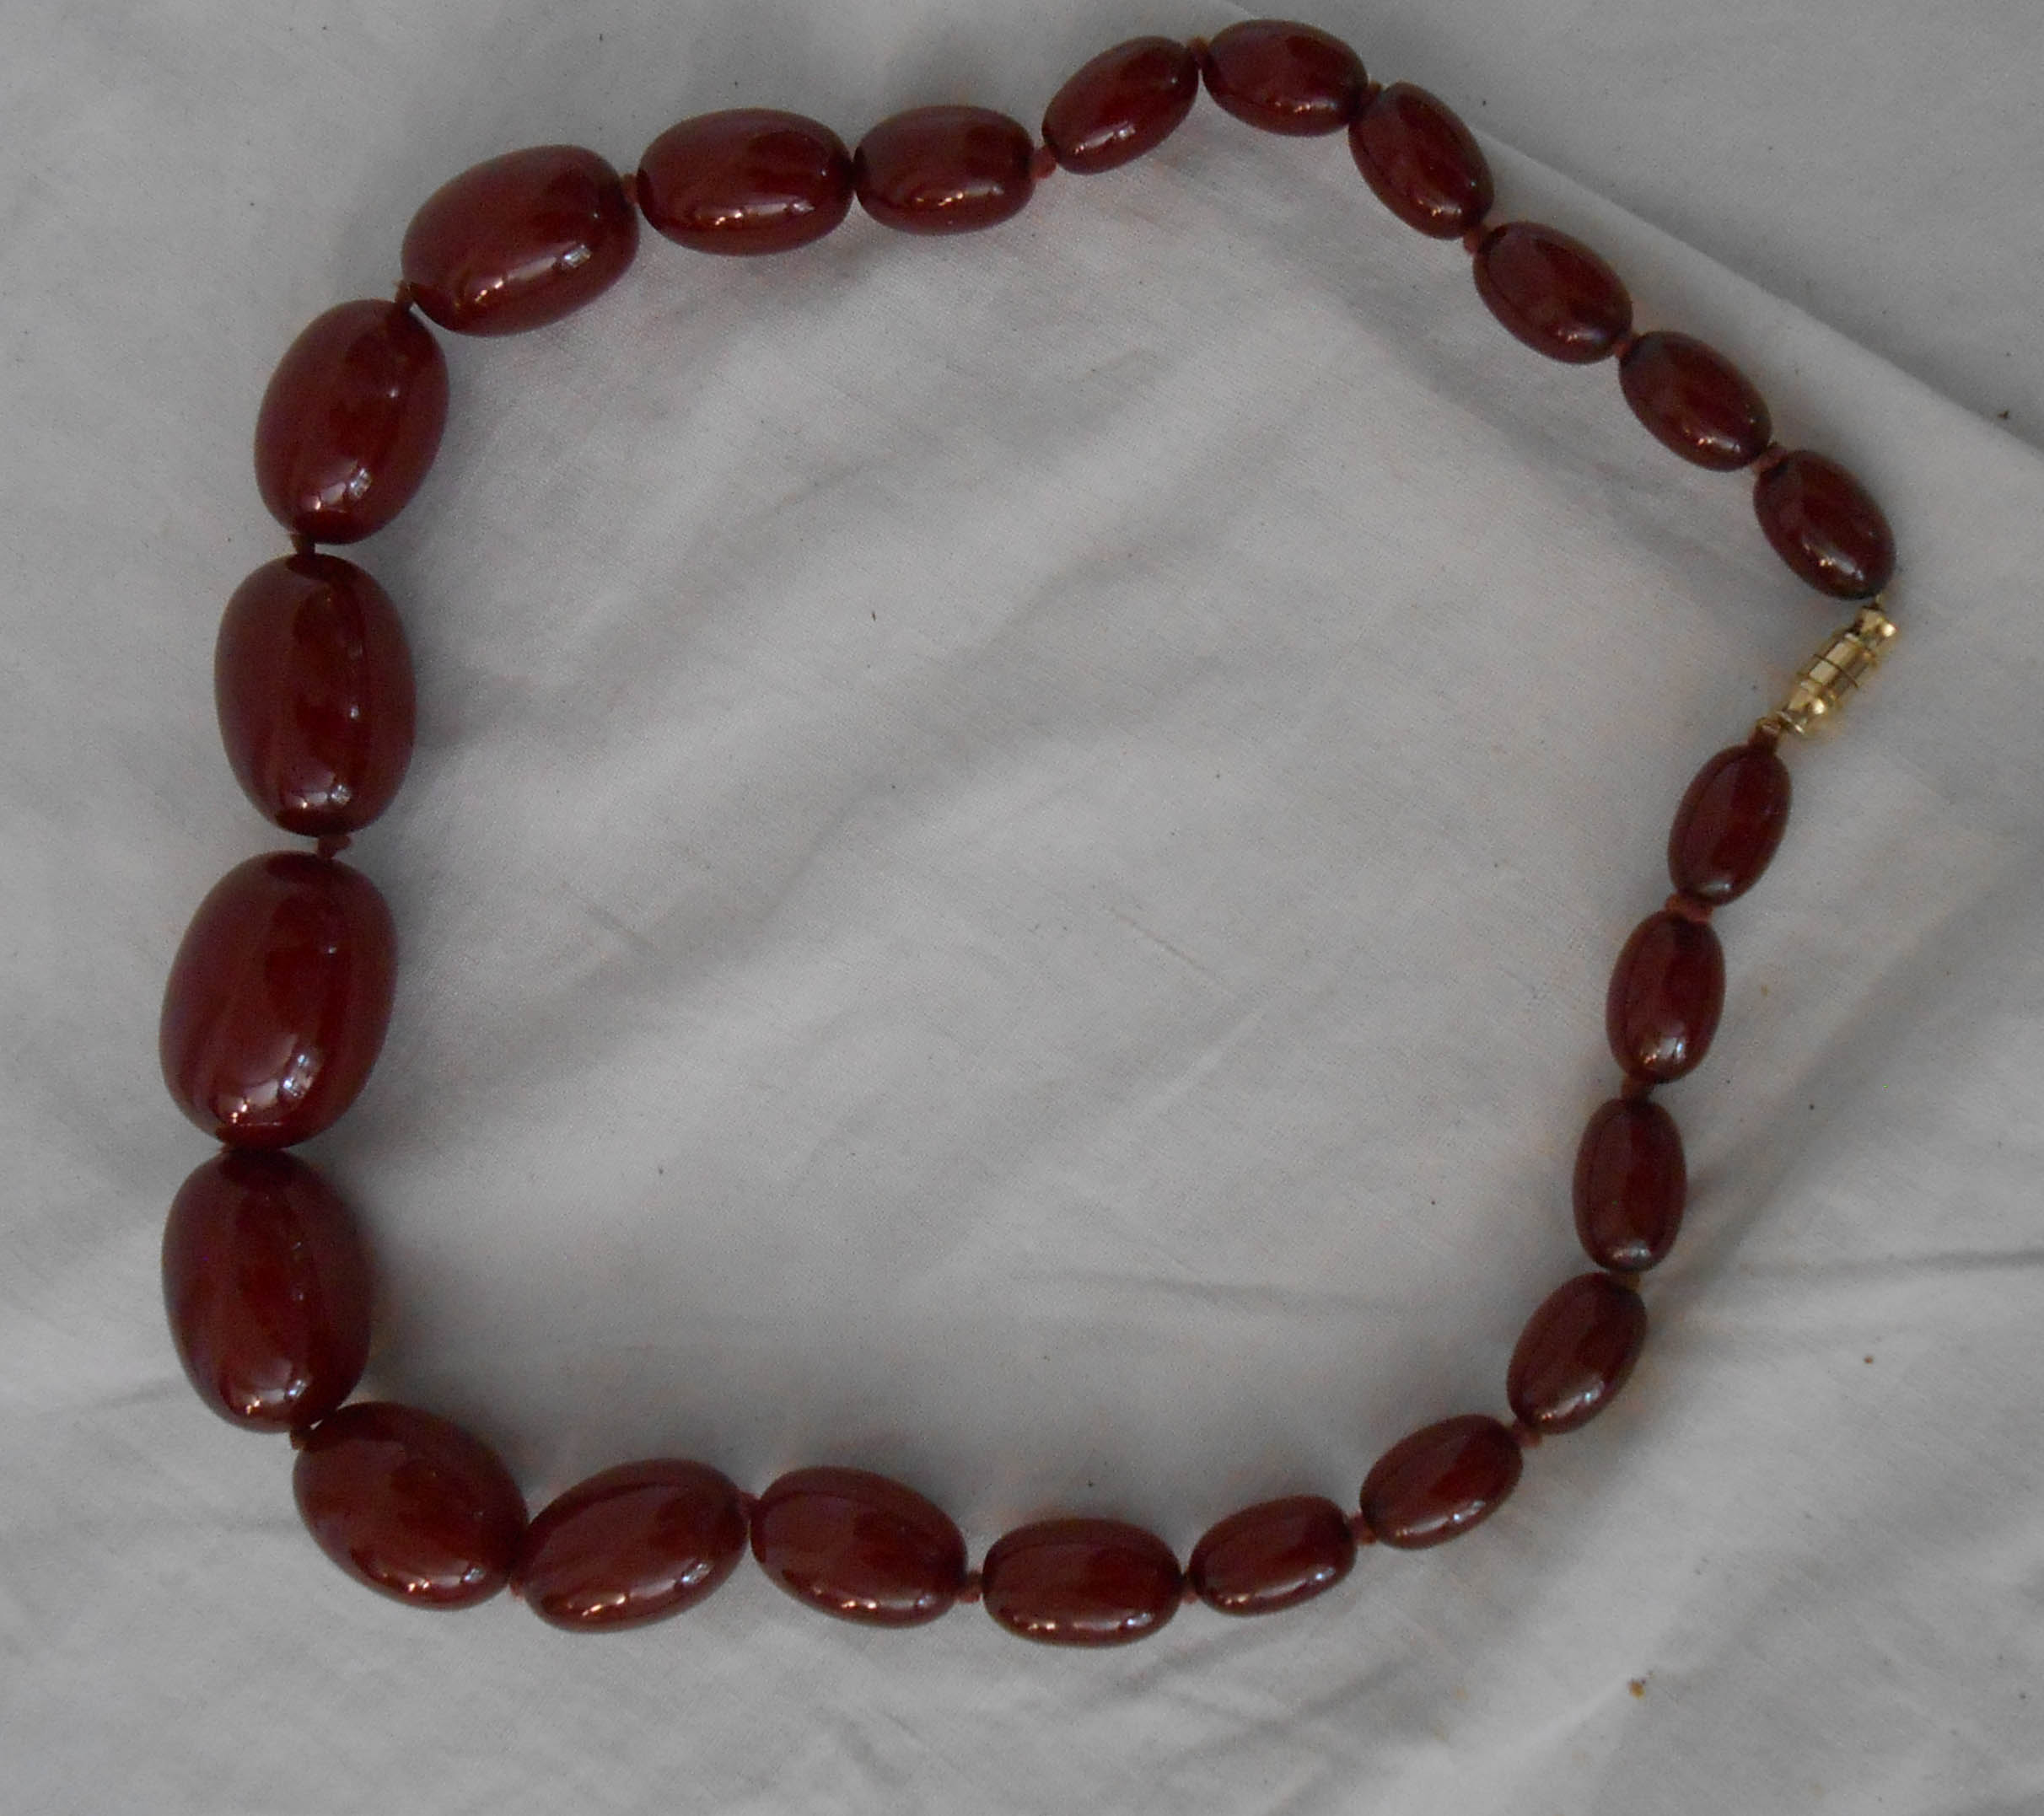 A red amber graduated bead necklace